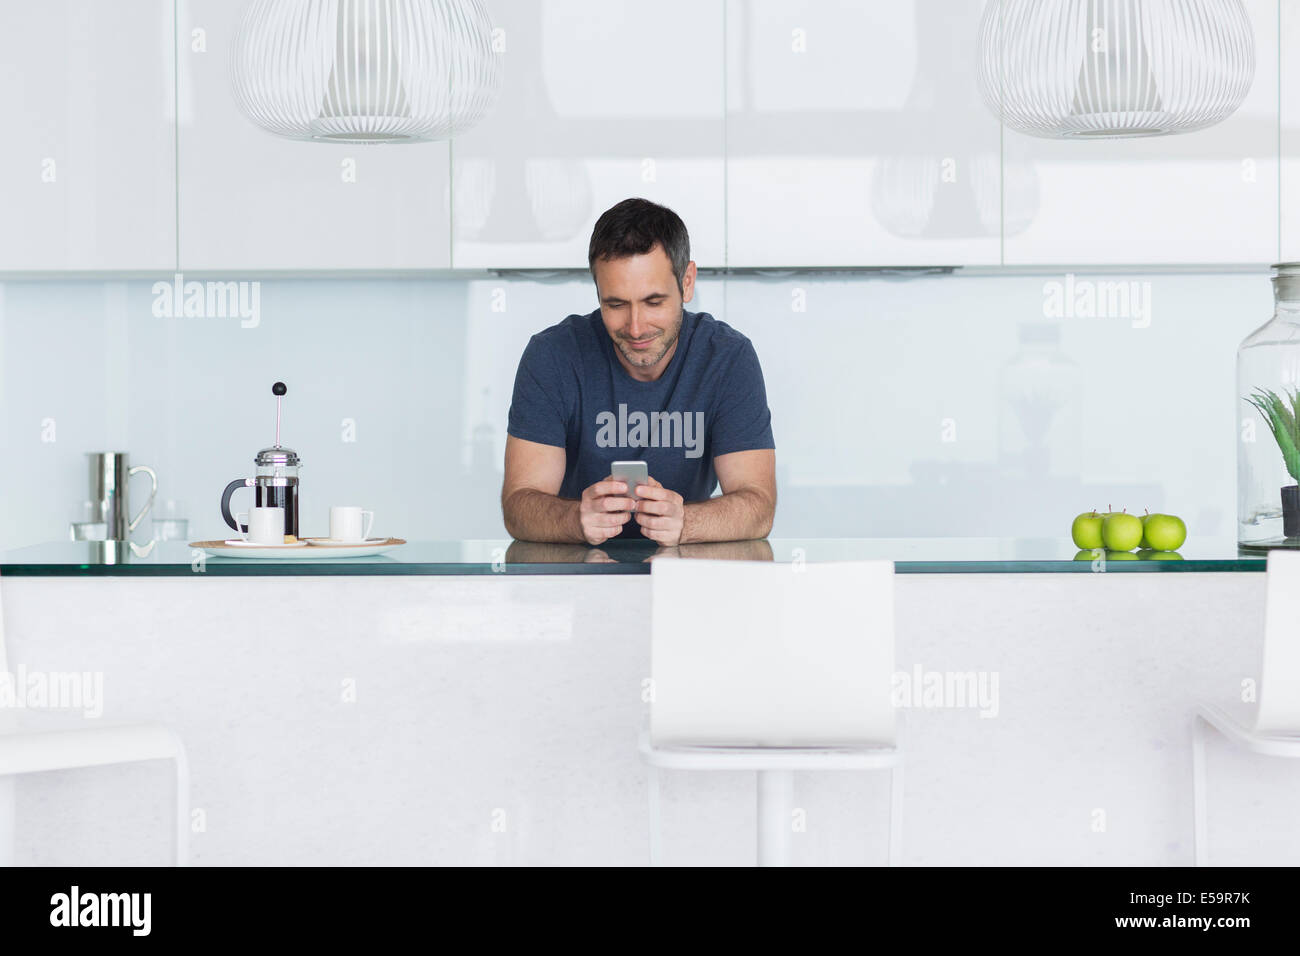 Man using cell phone in modern kitchen - Stock Image